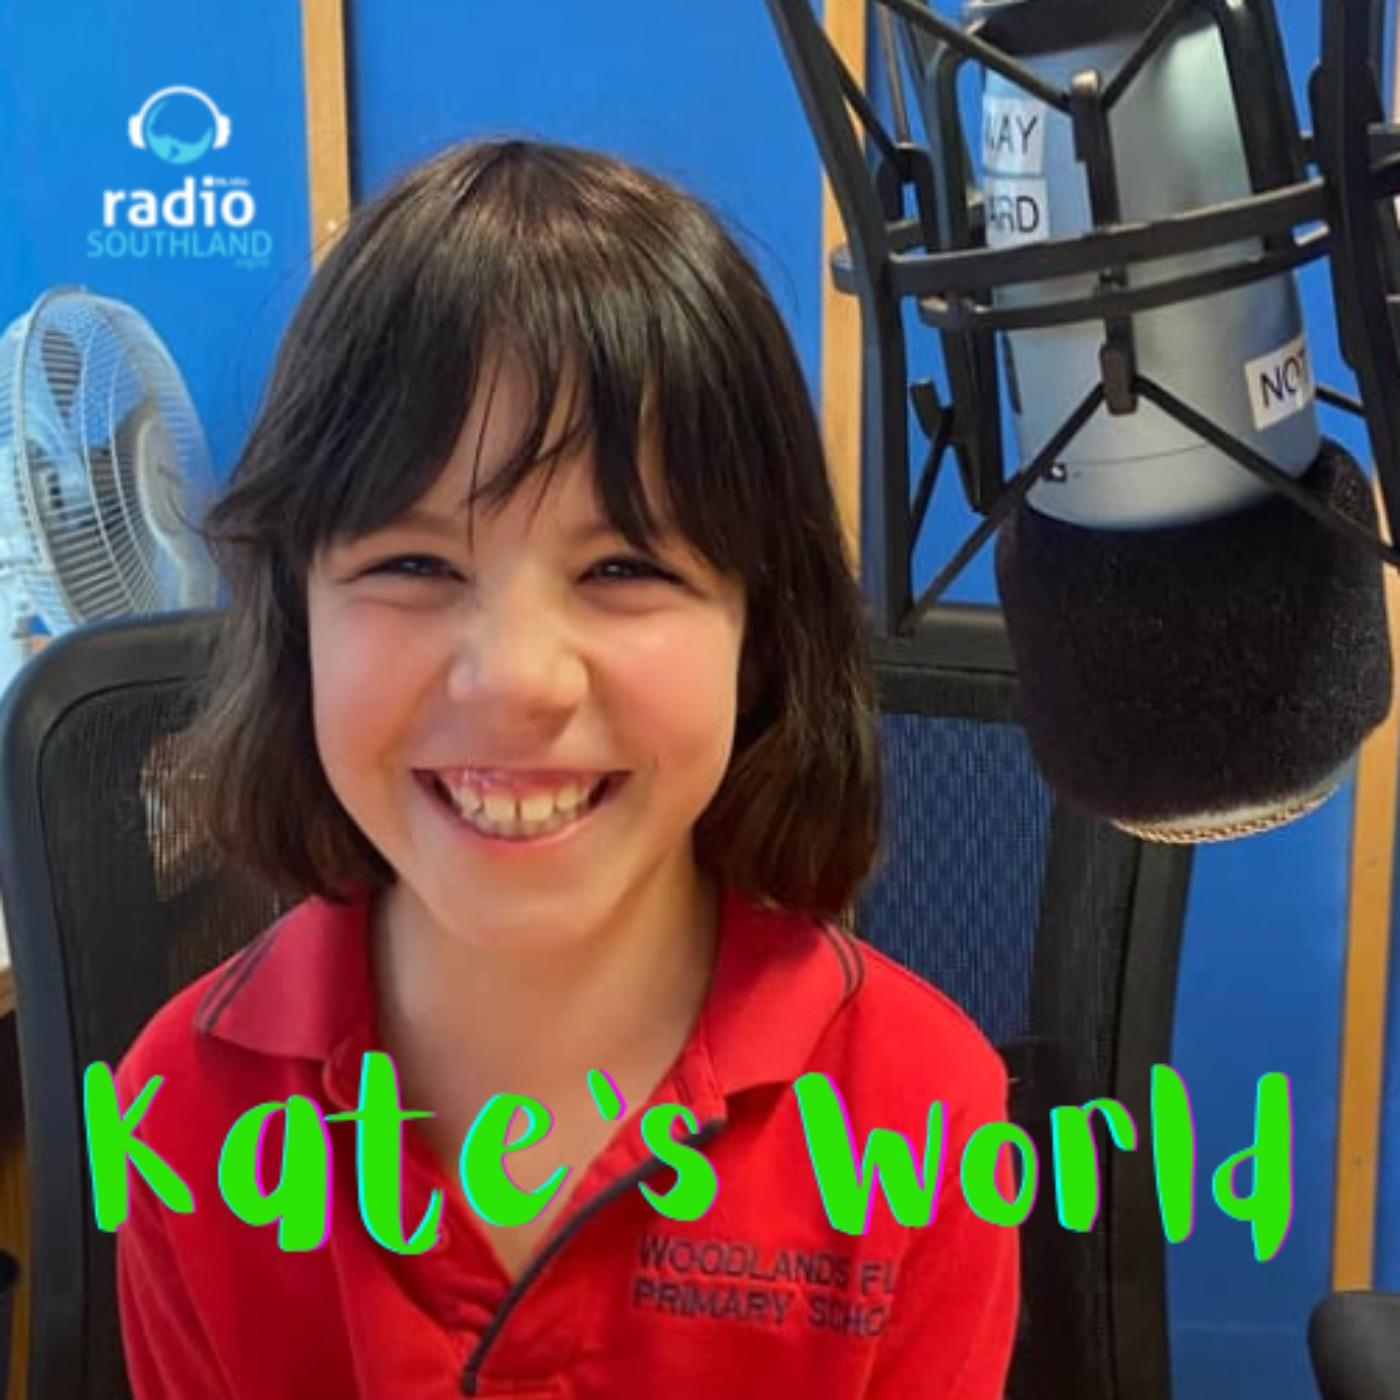 Kate's World